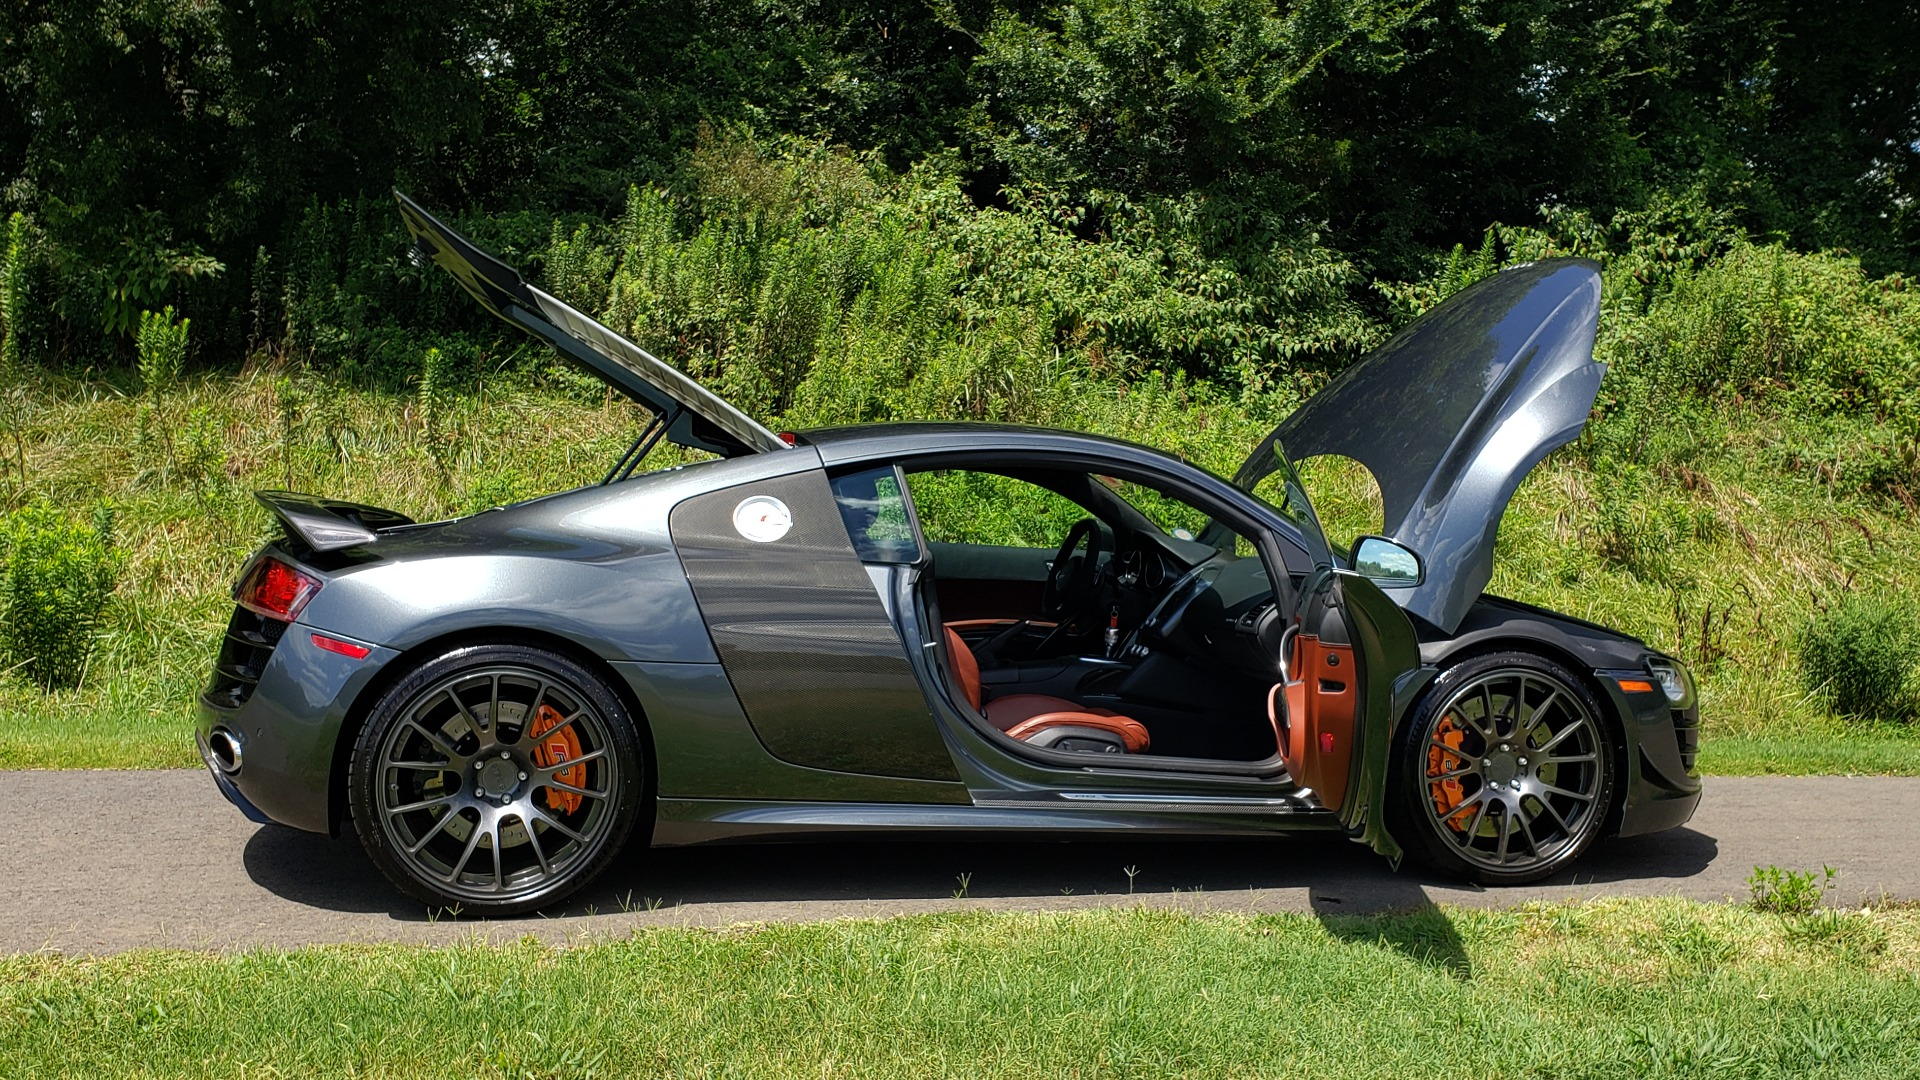 Used 2010 Audi R8 5.2L V10 SUPERCHARGED / AWD / COUPE / CUSTOM TUNED for sale $82,795 at Formula Imports in Charlotte NC 28227 27